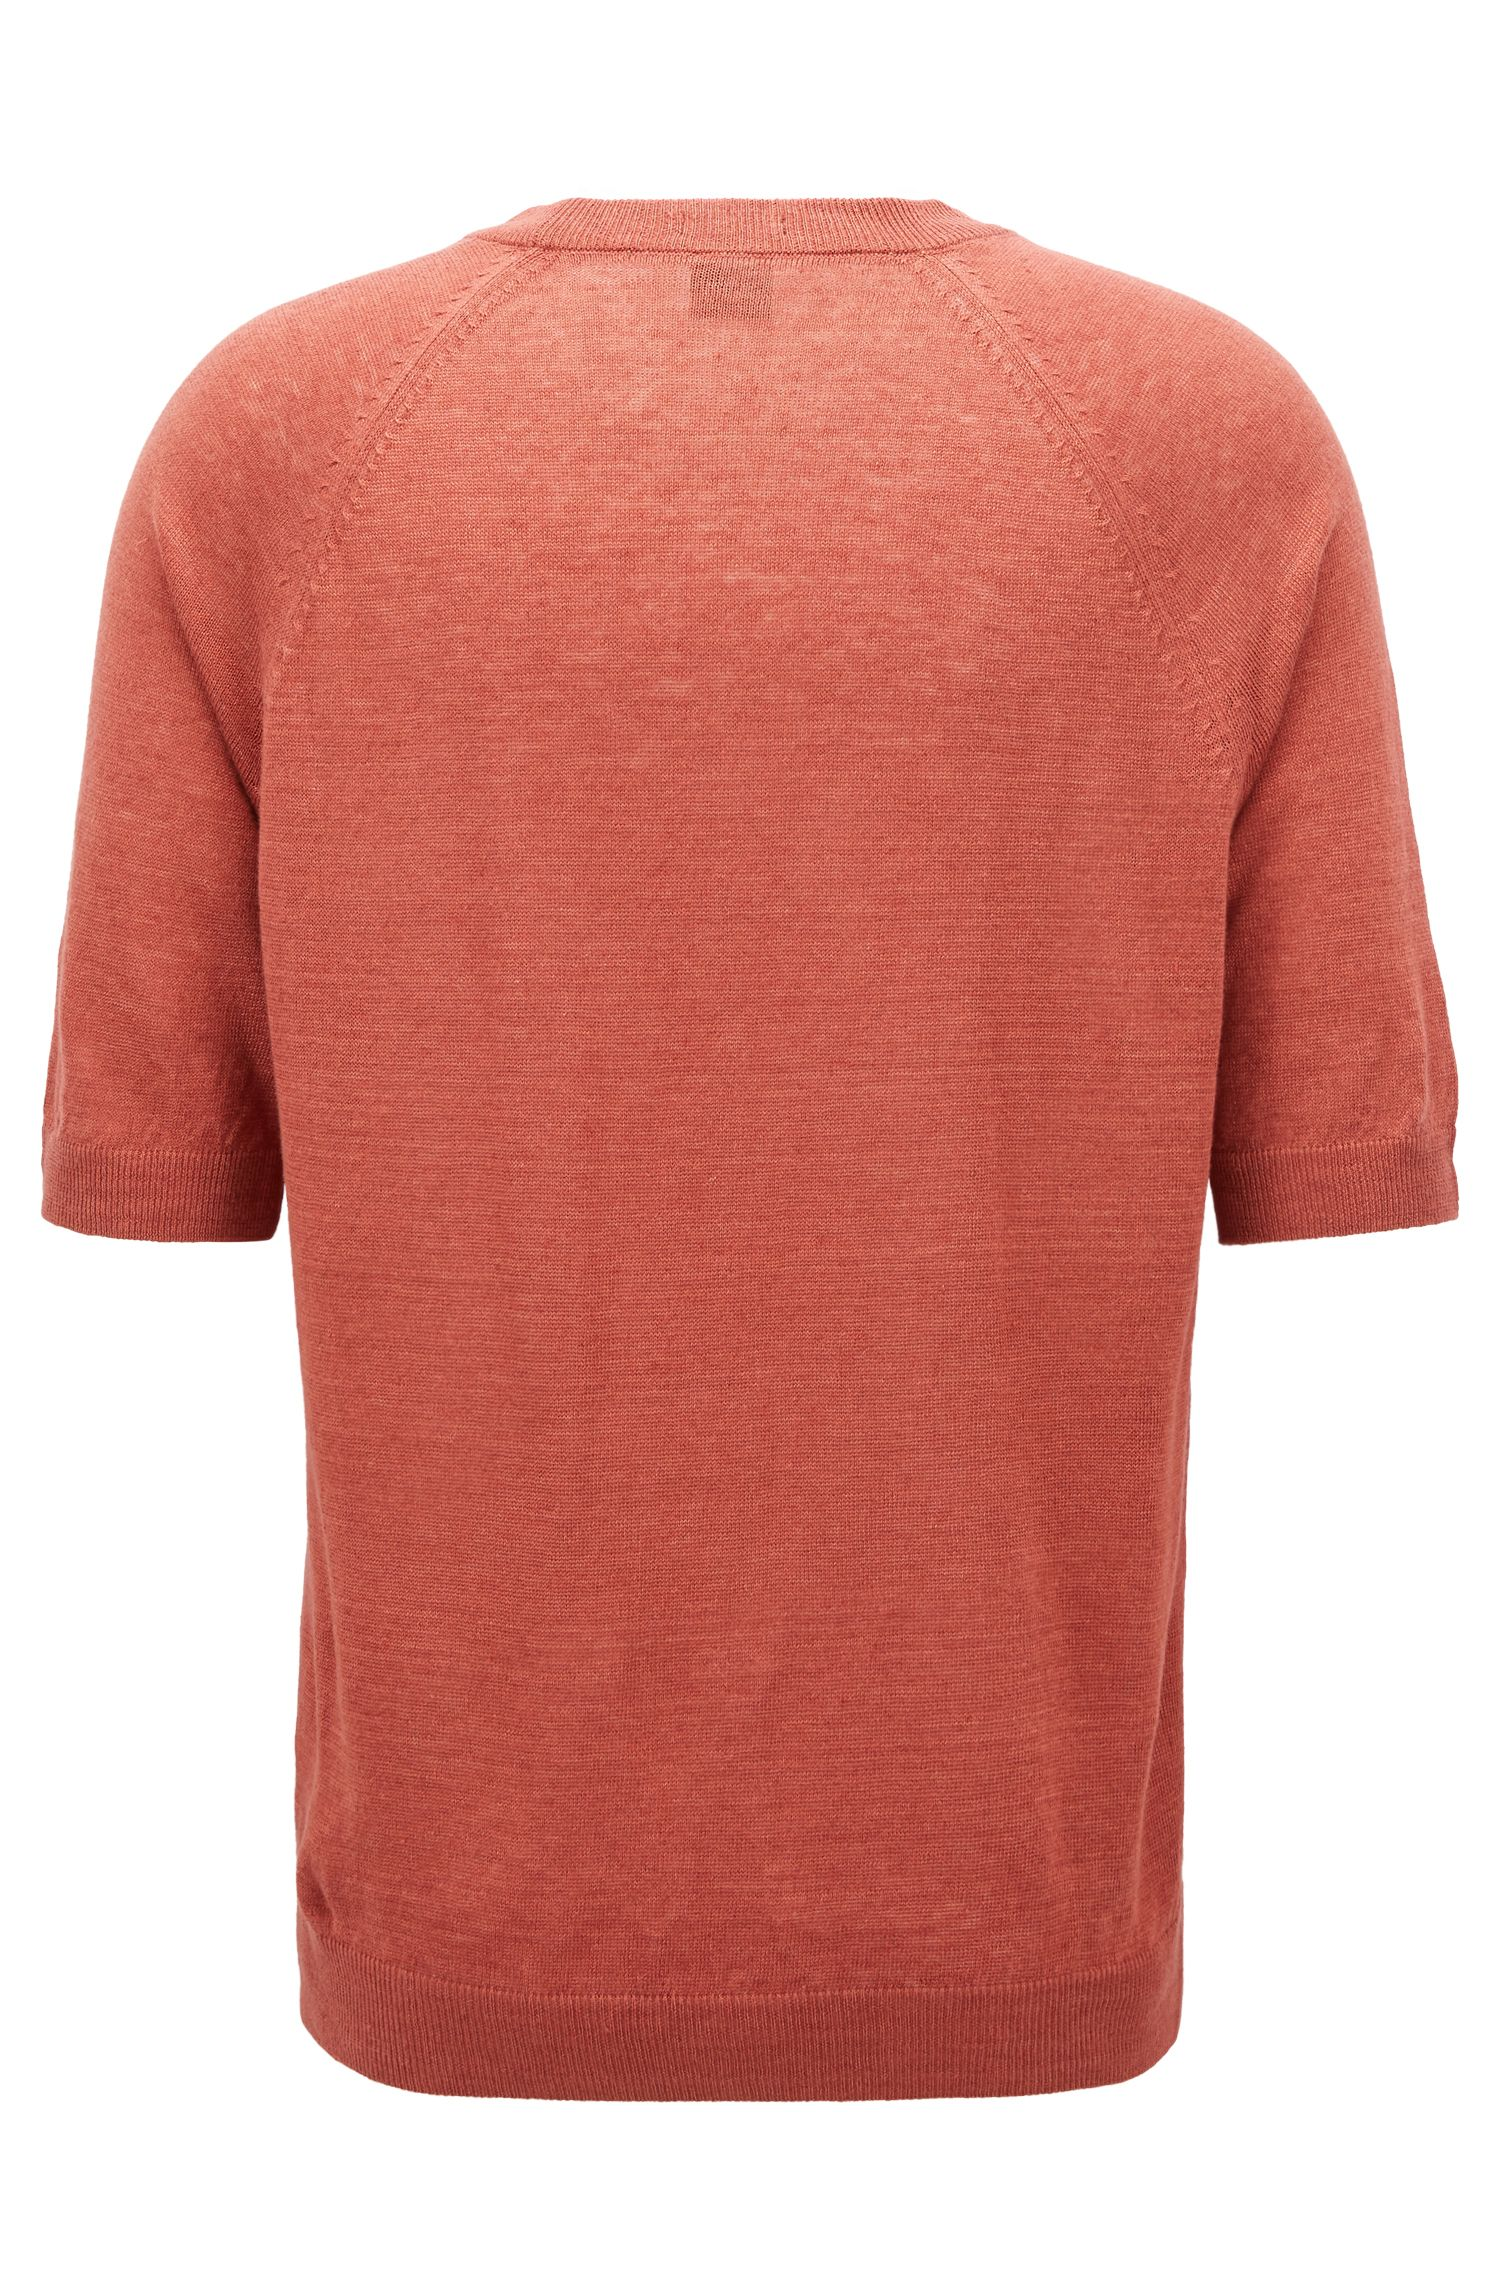 T-shirt-style sweater in linen jersey, Open Red